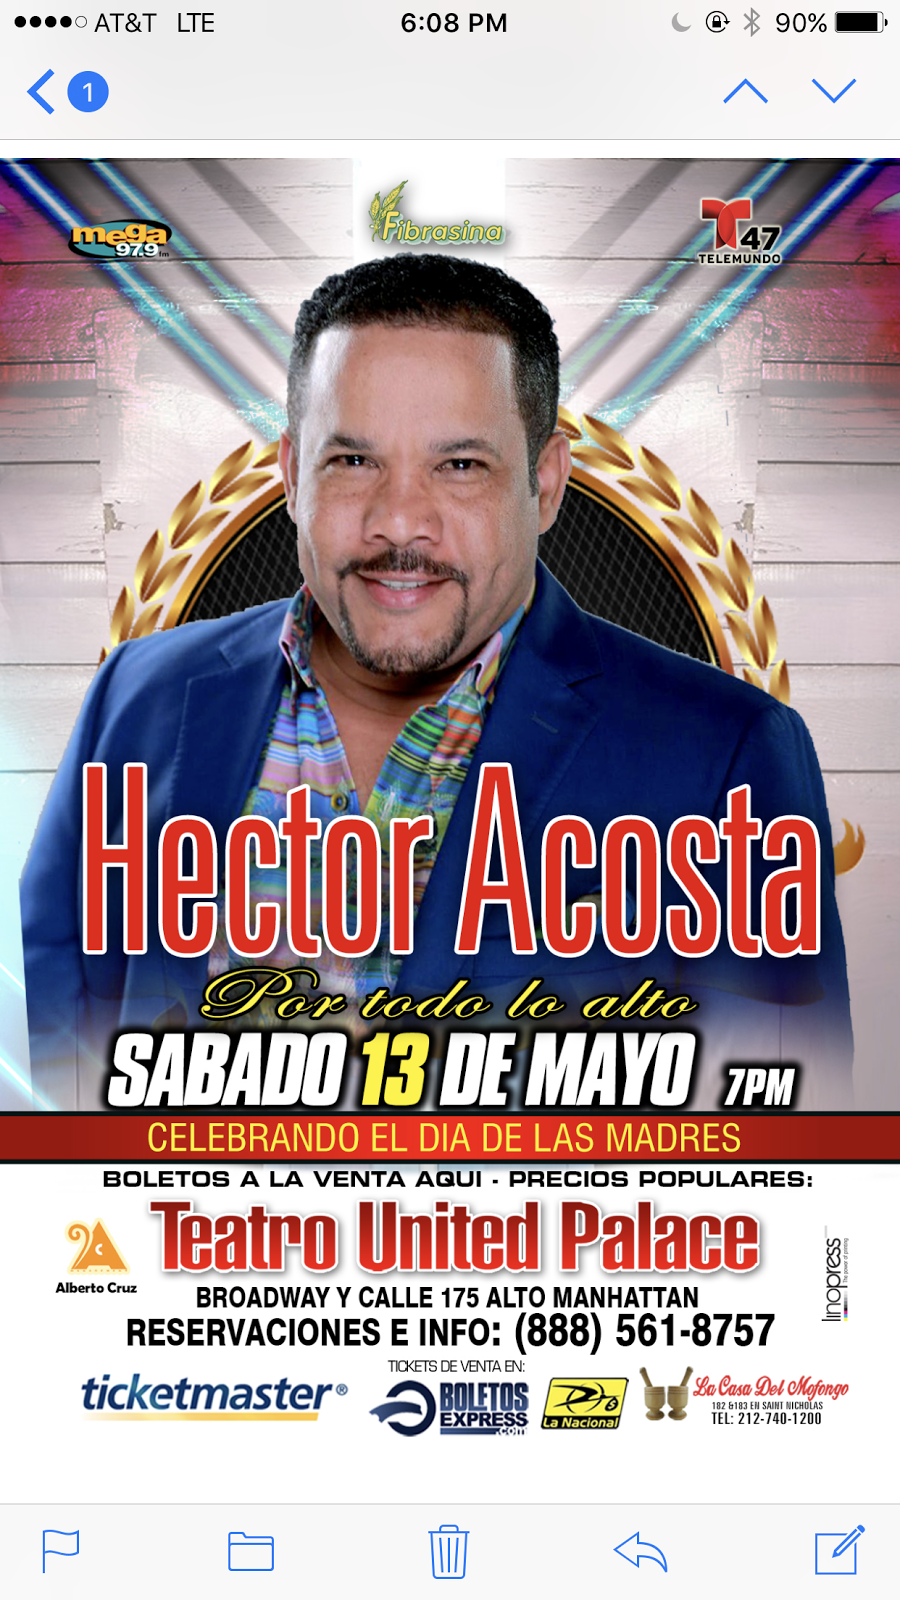 HECTOR ACOSTA EN CONCIERTO - UNITED PALACE DE NEW YORK